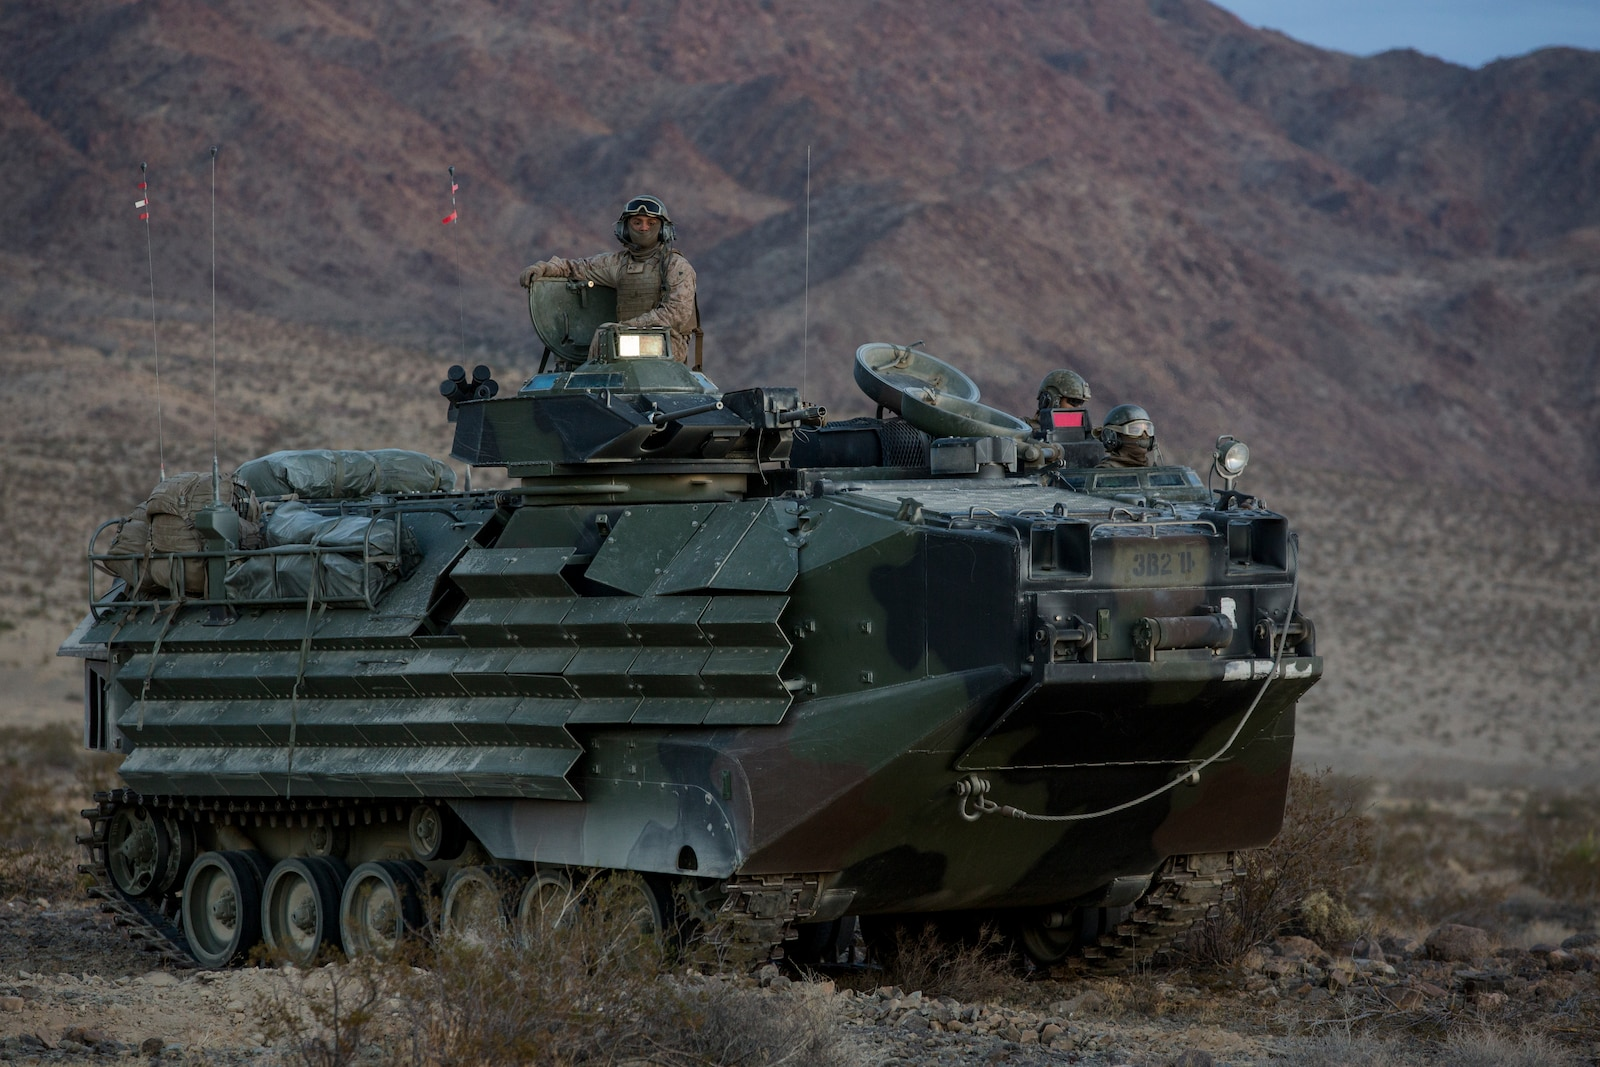 U.S. Marines with 3rd Battalion, 7th Marine Regiment, 1st Marine Division, utilize amphibious assault vehicles during a Marine Corps Combat Readiness Evaluation (MCCRE) at Marine Corps Air Ground Combat Center, Twentynine Palms, Calif., Nov. 29, 2017.